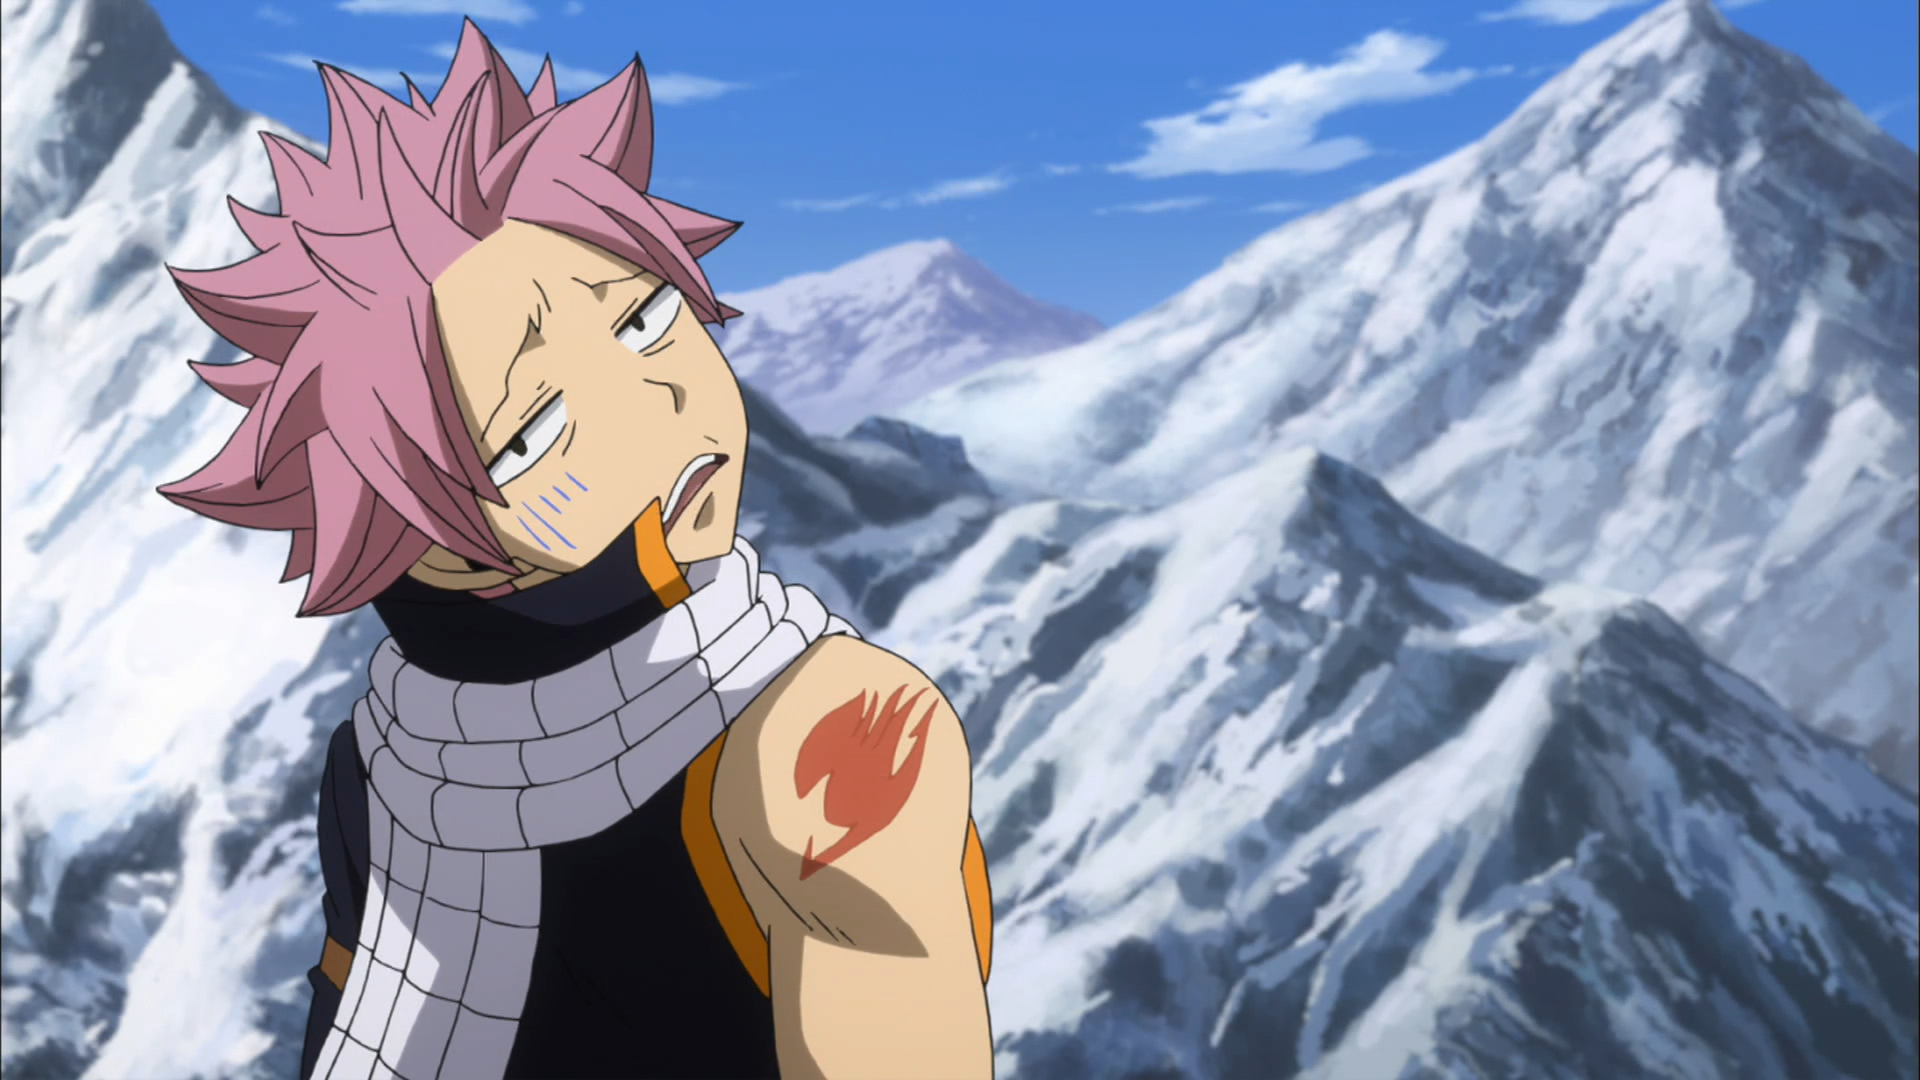 [HorribleSubs] Fairy Tail S2 - 46 [1080p]_001_28745